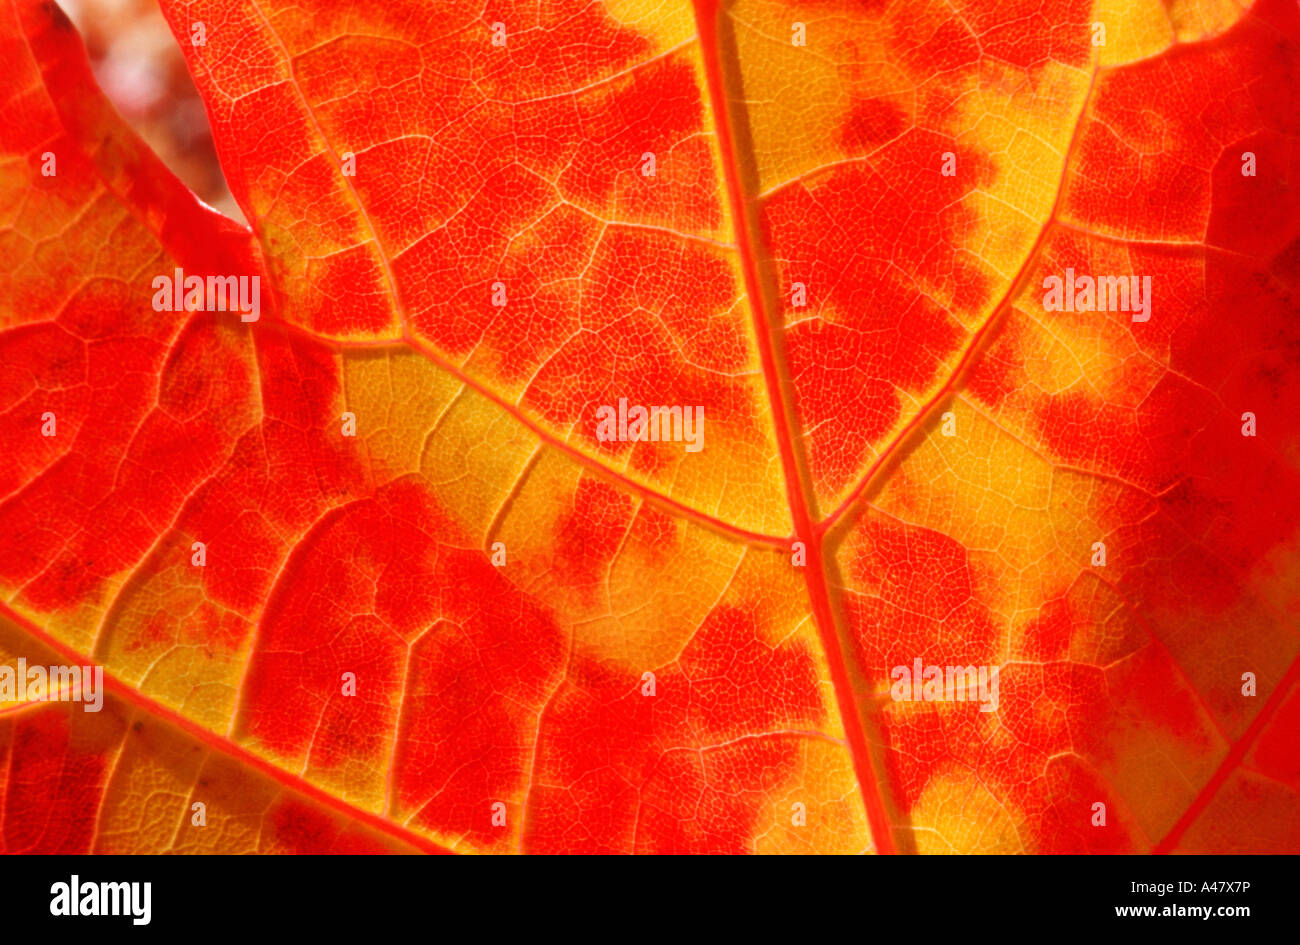 Detail in a dazzling red and gold maple leaf Stock Photo